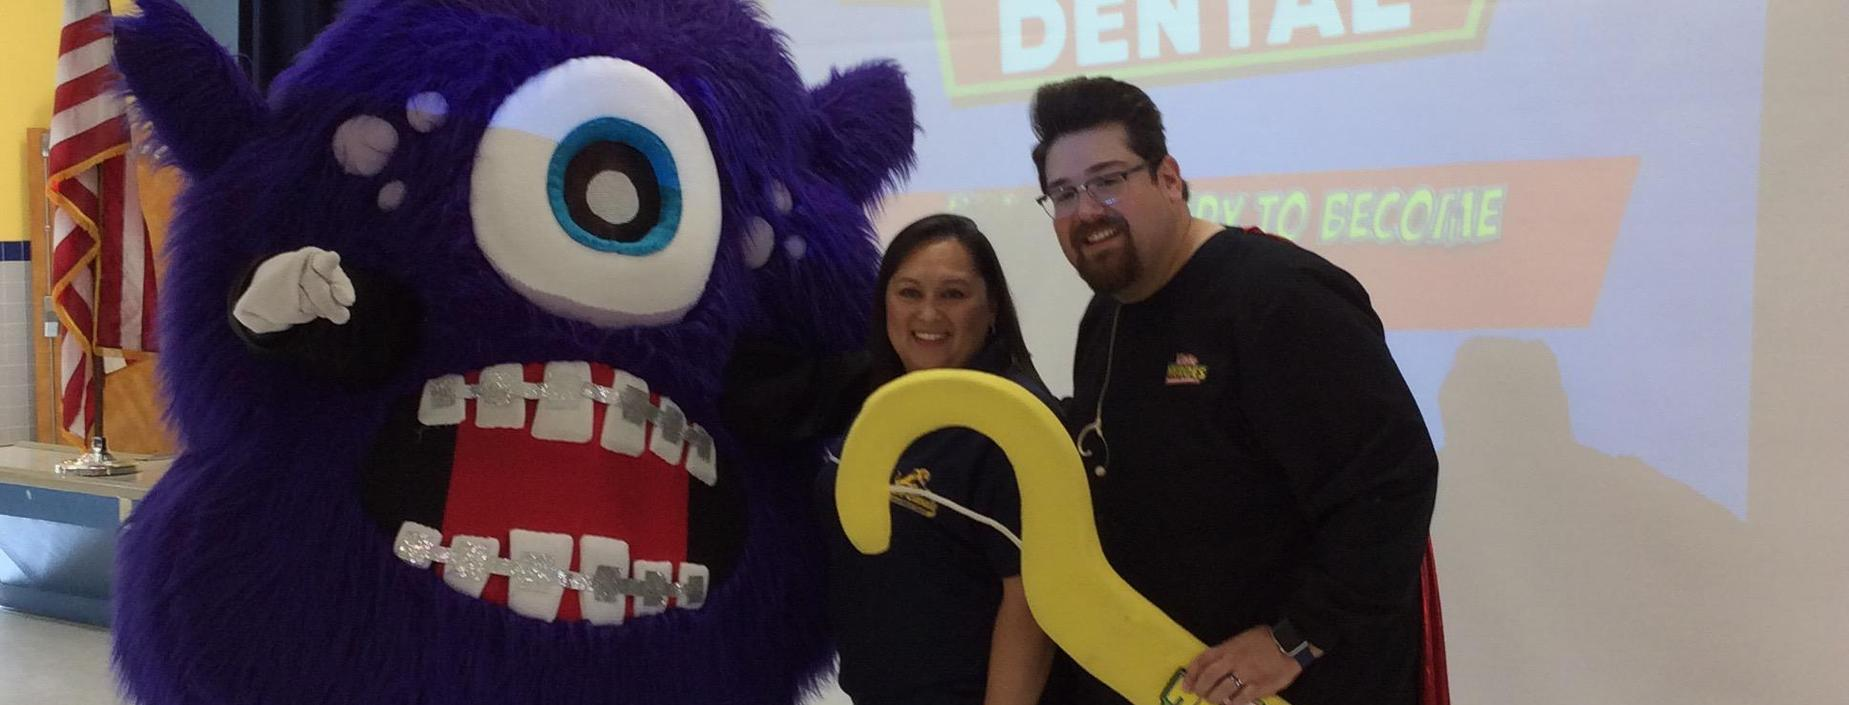 Nurse with dental staff and mascot